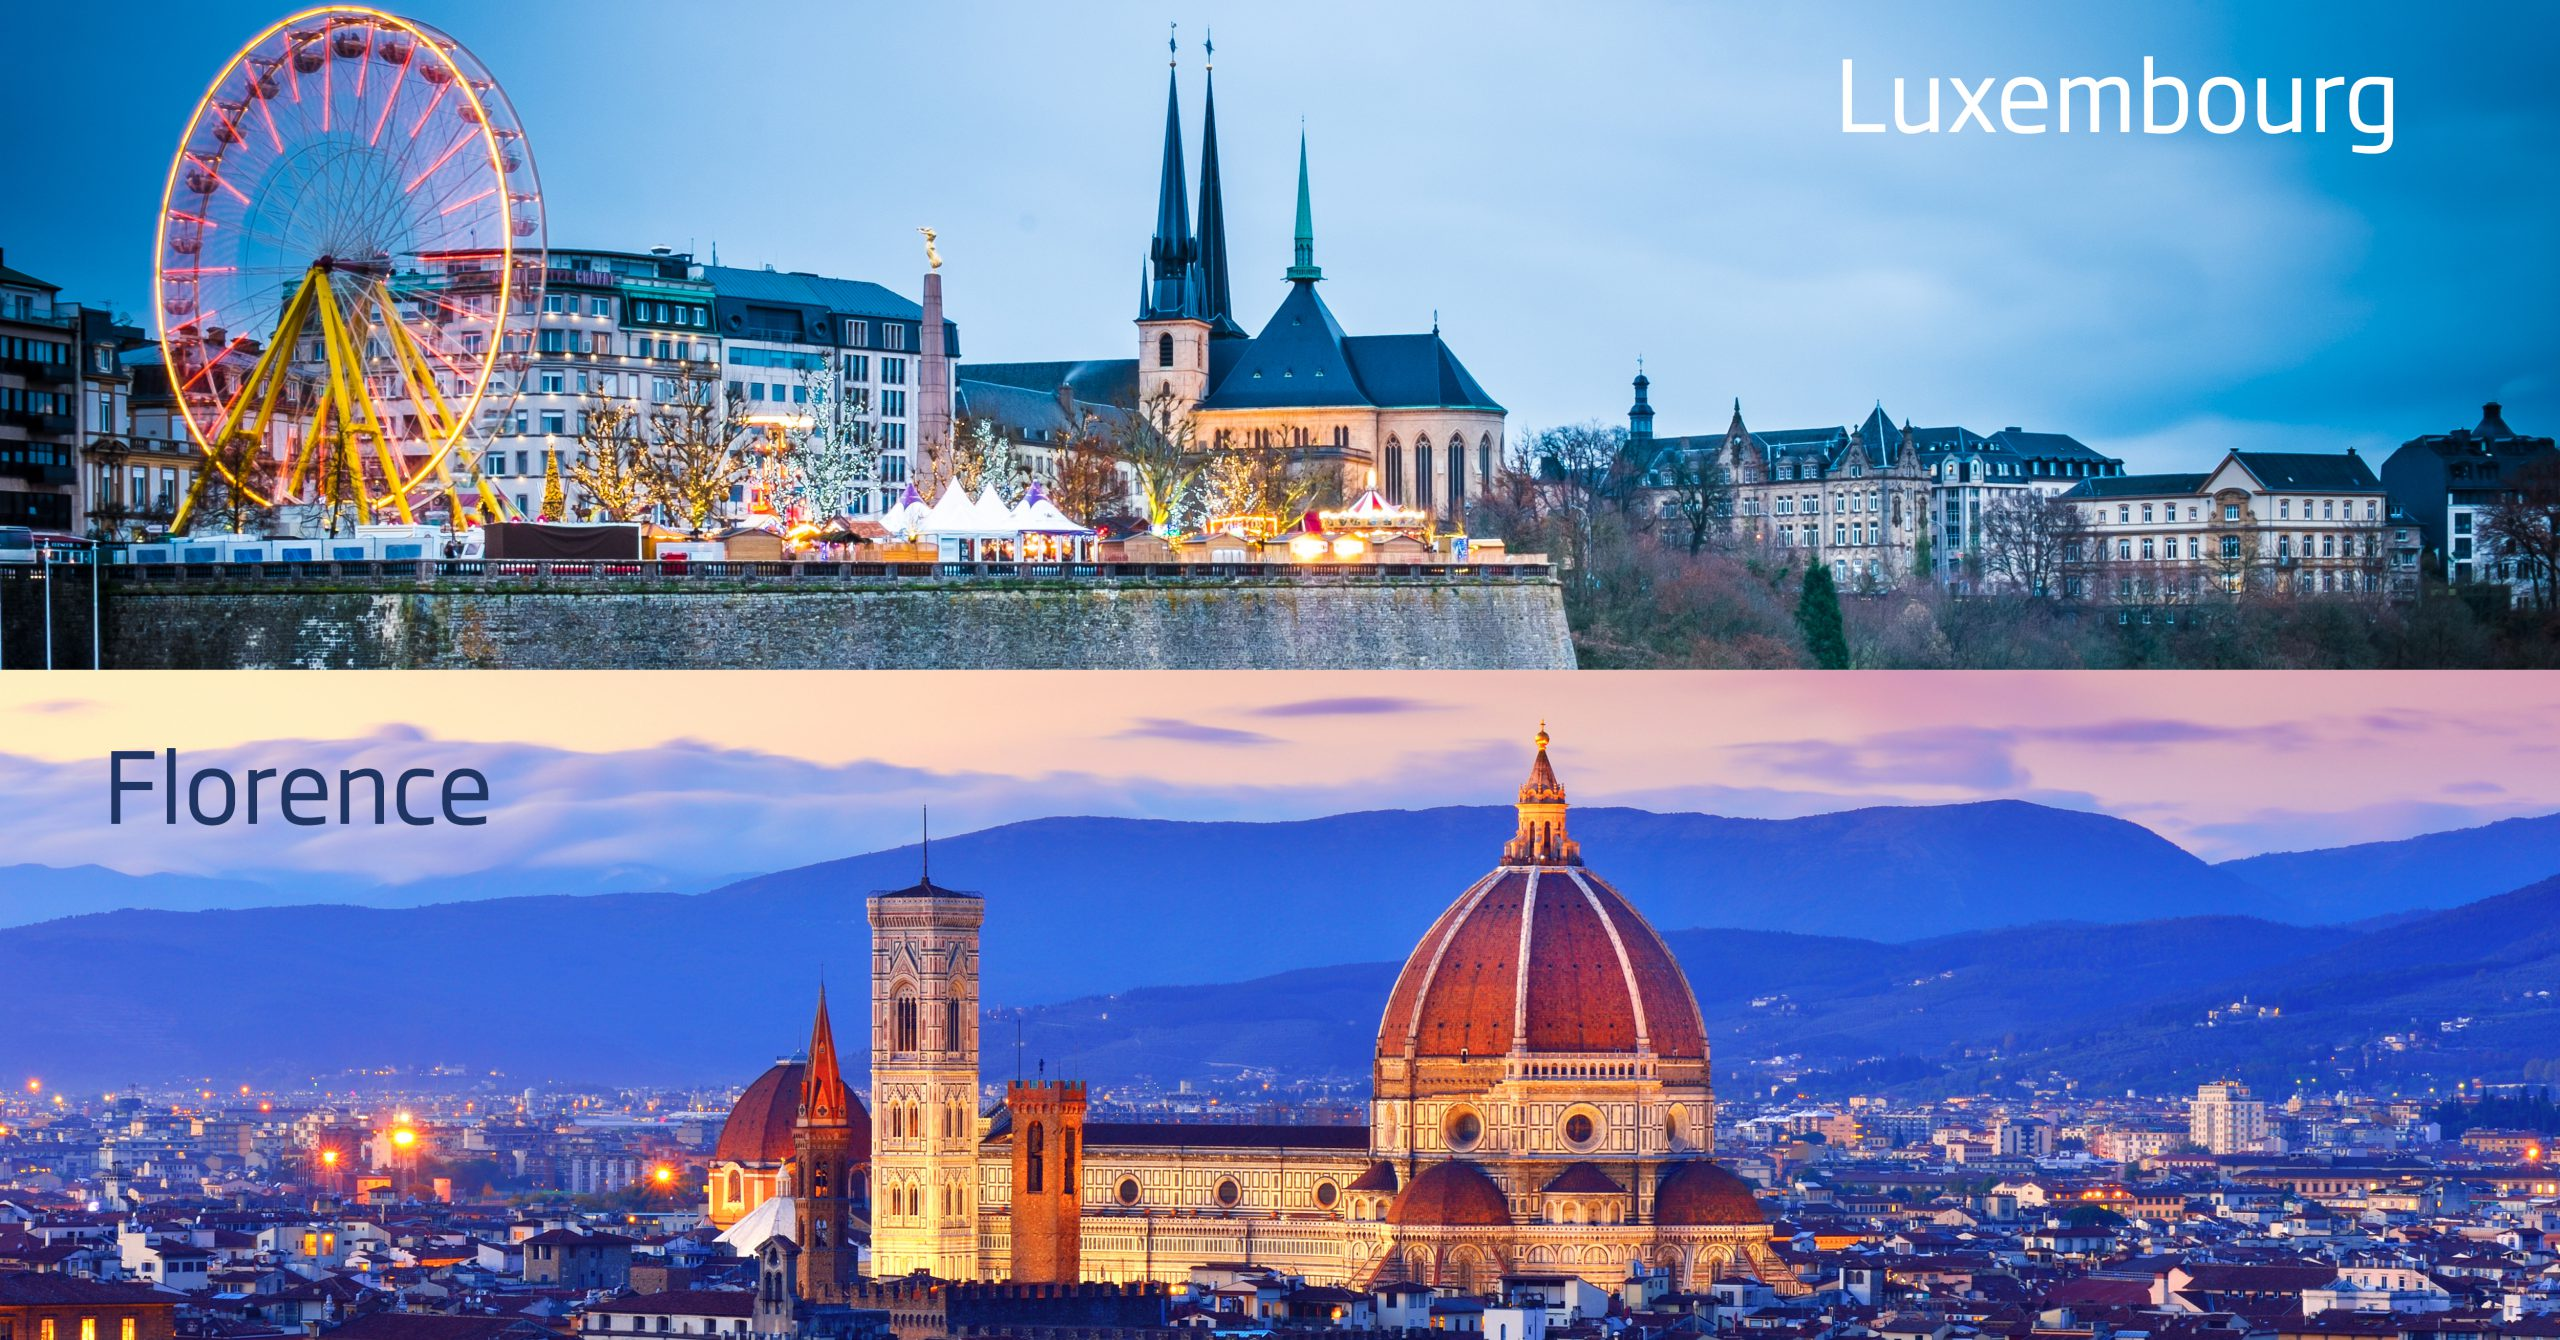 Luxembourg and Florence